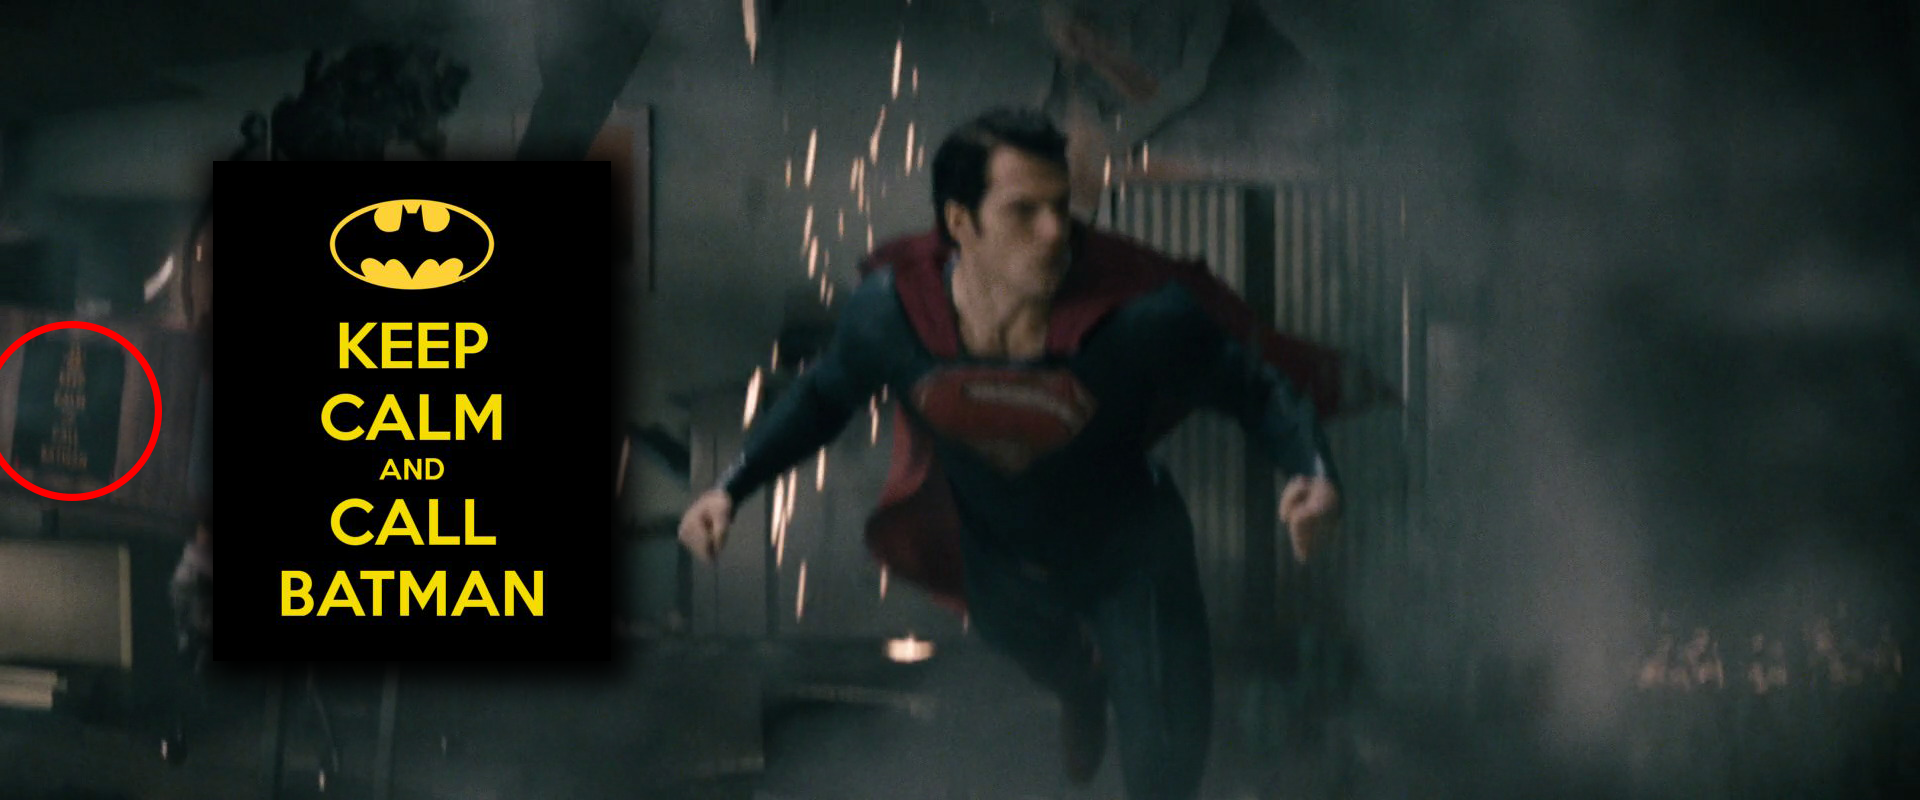 1-keep-calm-and-call-batman-man-of-steel.png